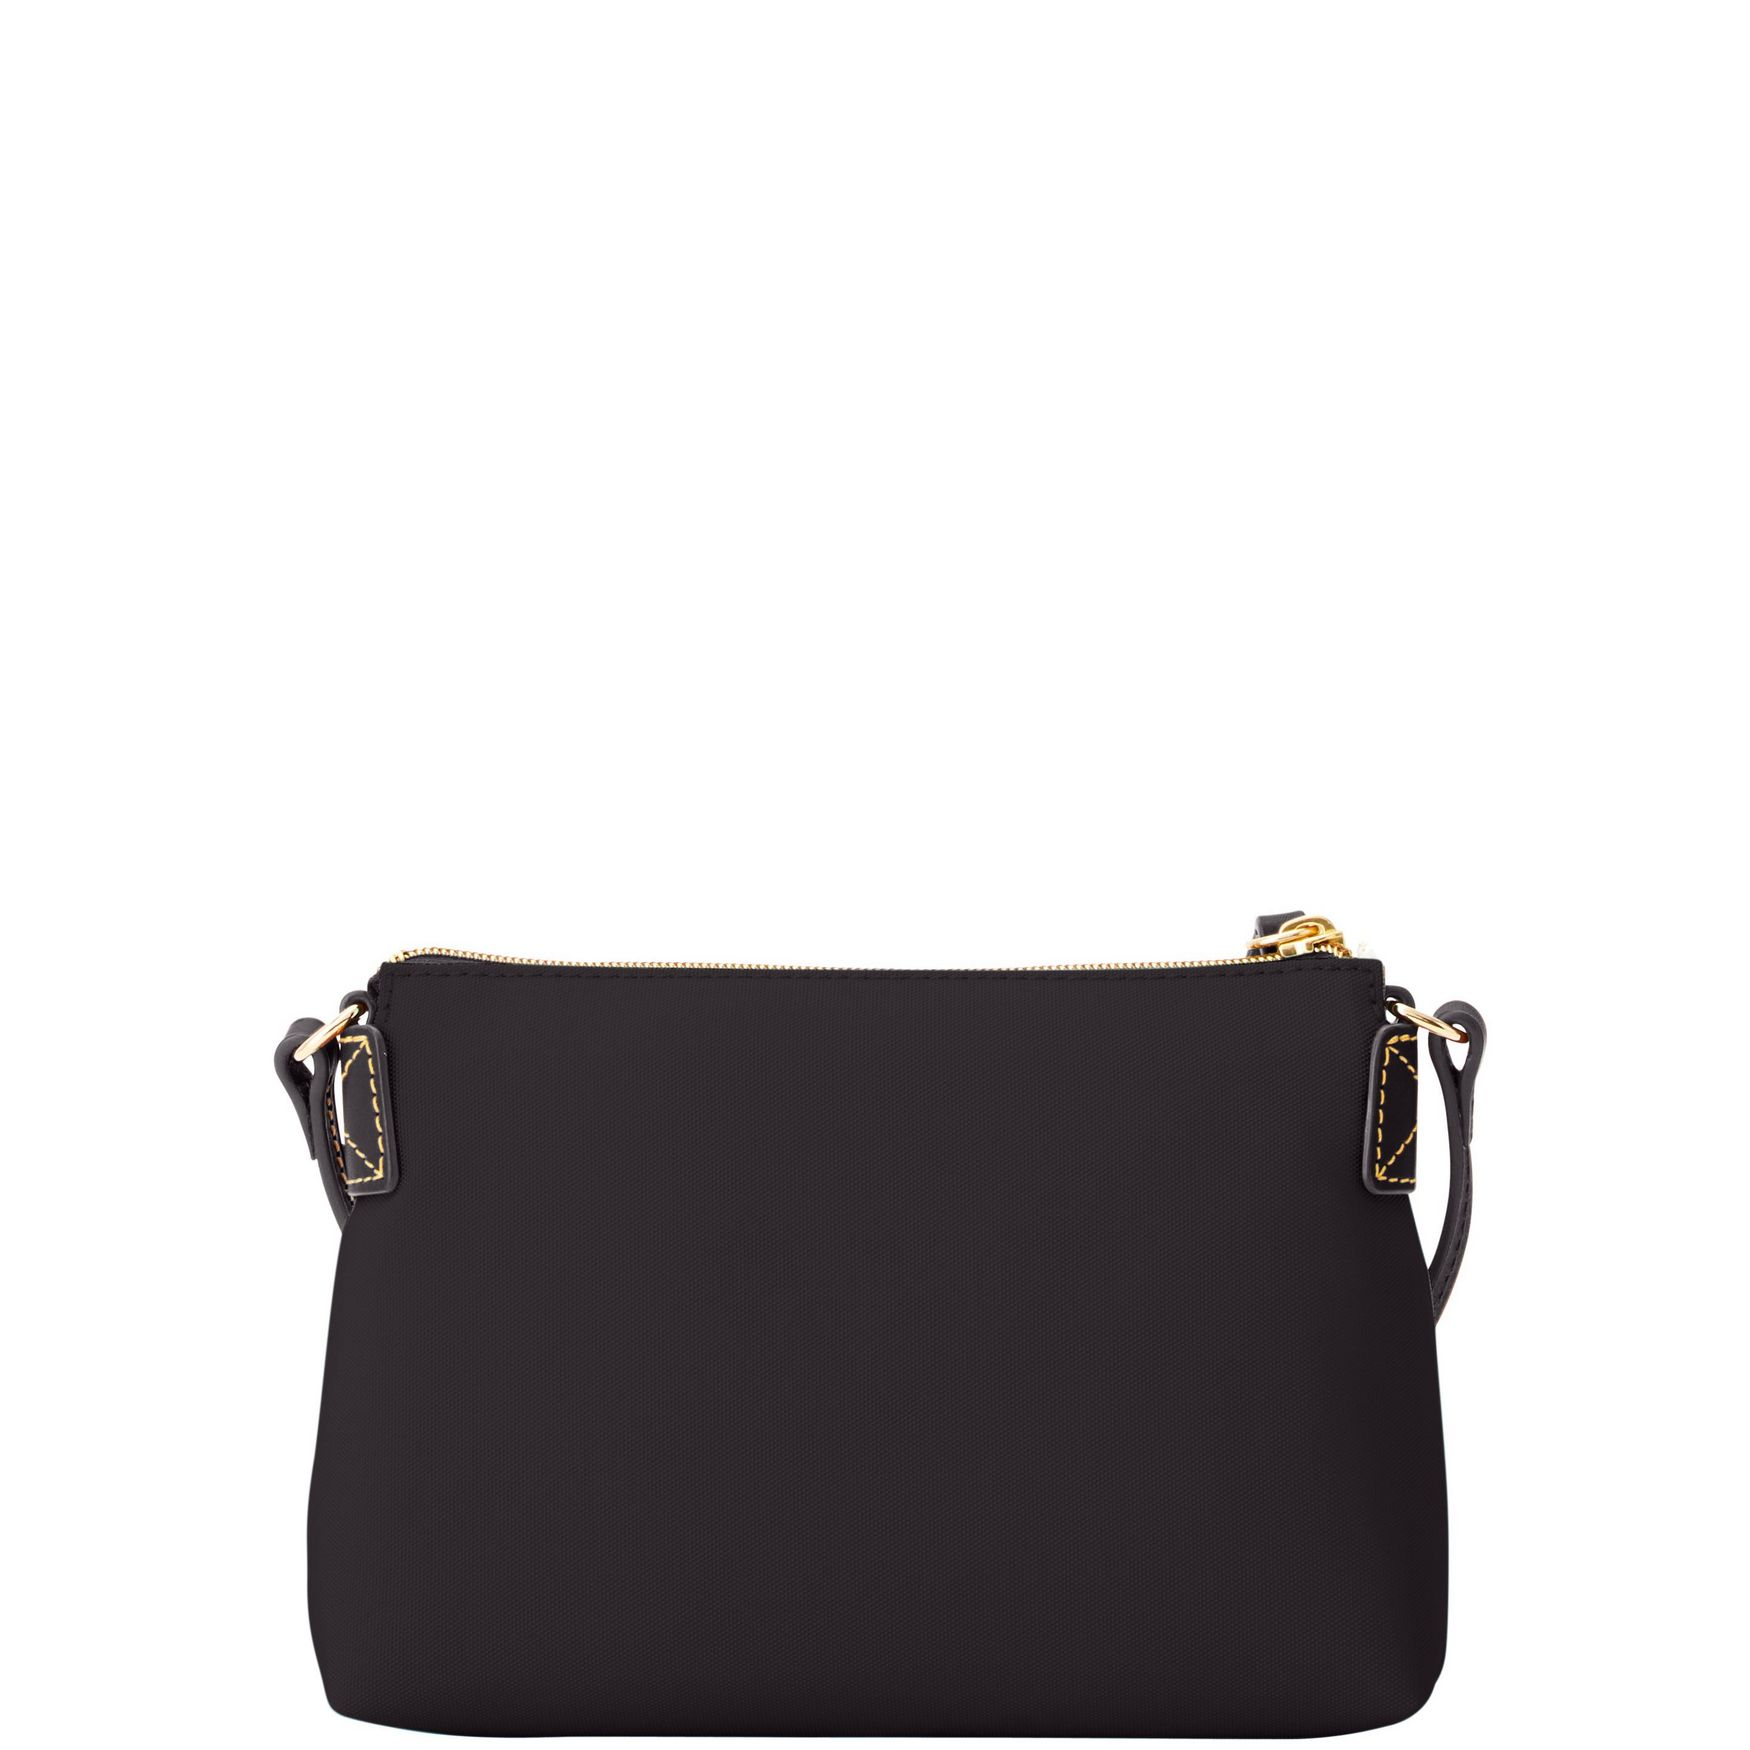 Dooney-amp-Bourke-Nylon-Crossbody-Pouchette-Shoulder-Bag thumbnail 13